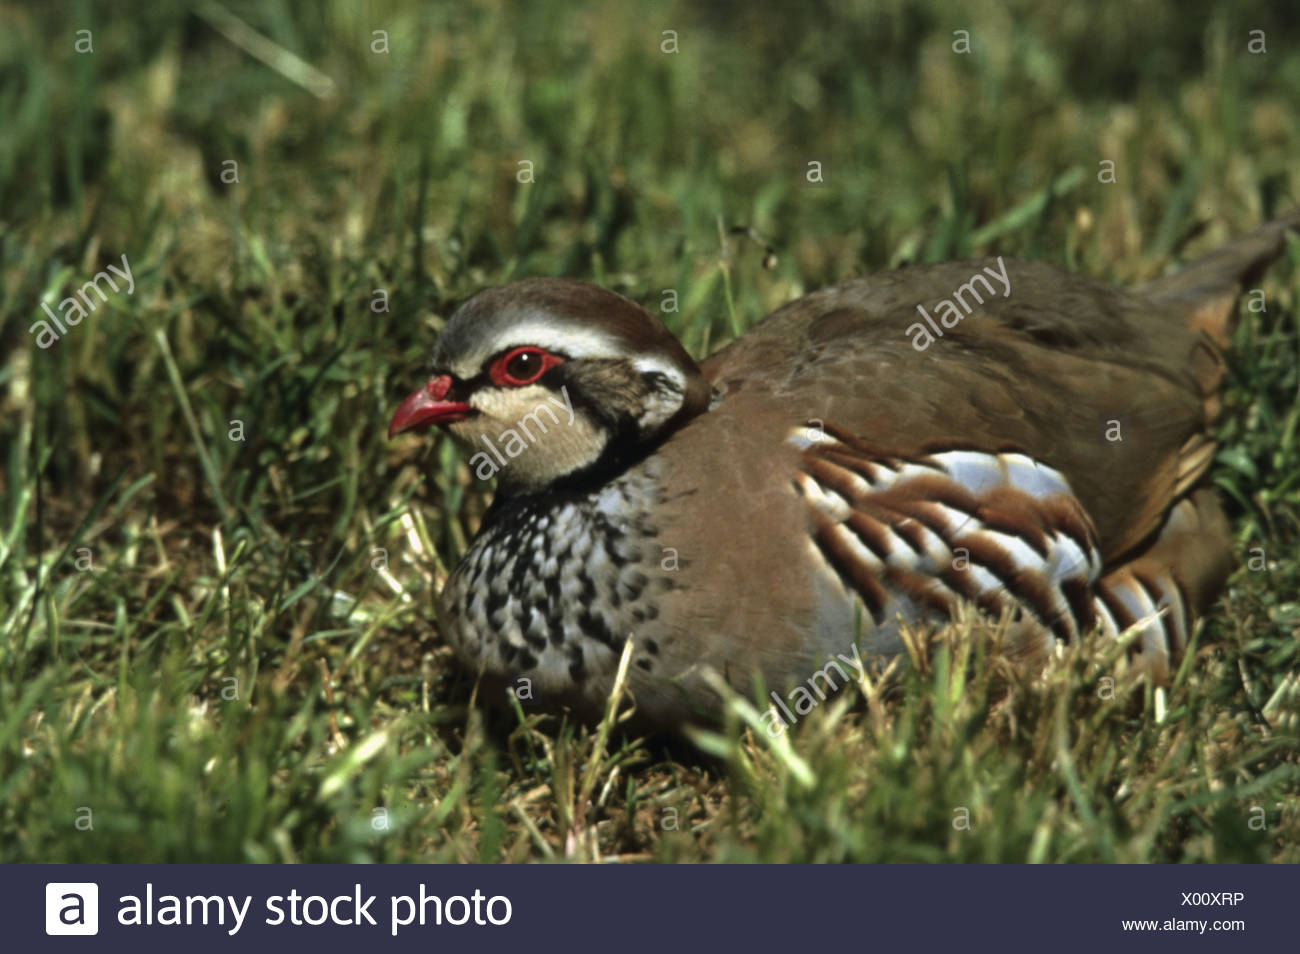 zoology / animals, avian / bird, Phasianidae, Red-legged Partridge (Alectoris rufa), sitting on grass, Crau, France, distribution: Europe, Additional-Rights-Clearance-Info-Not-Available - Stock Image